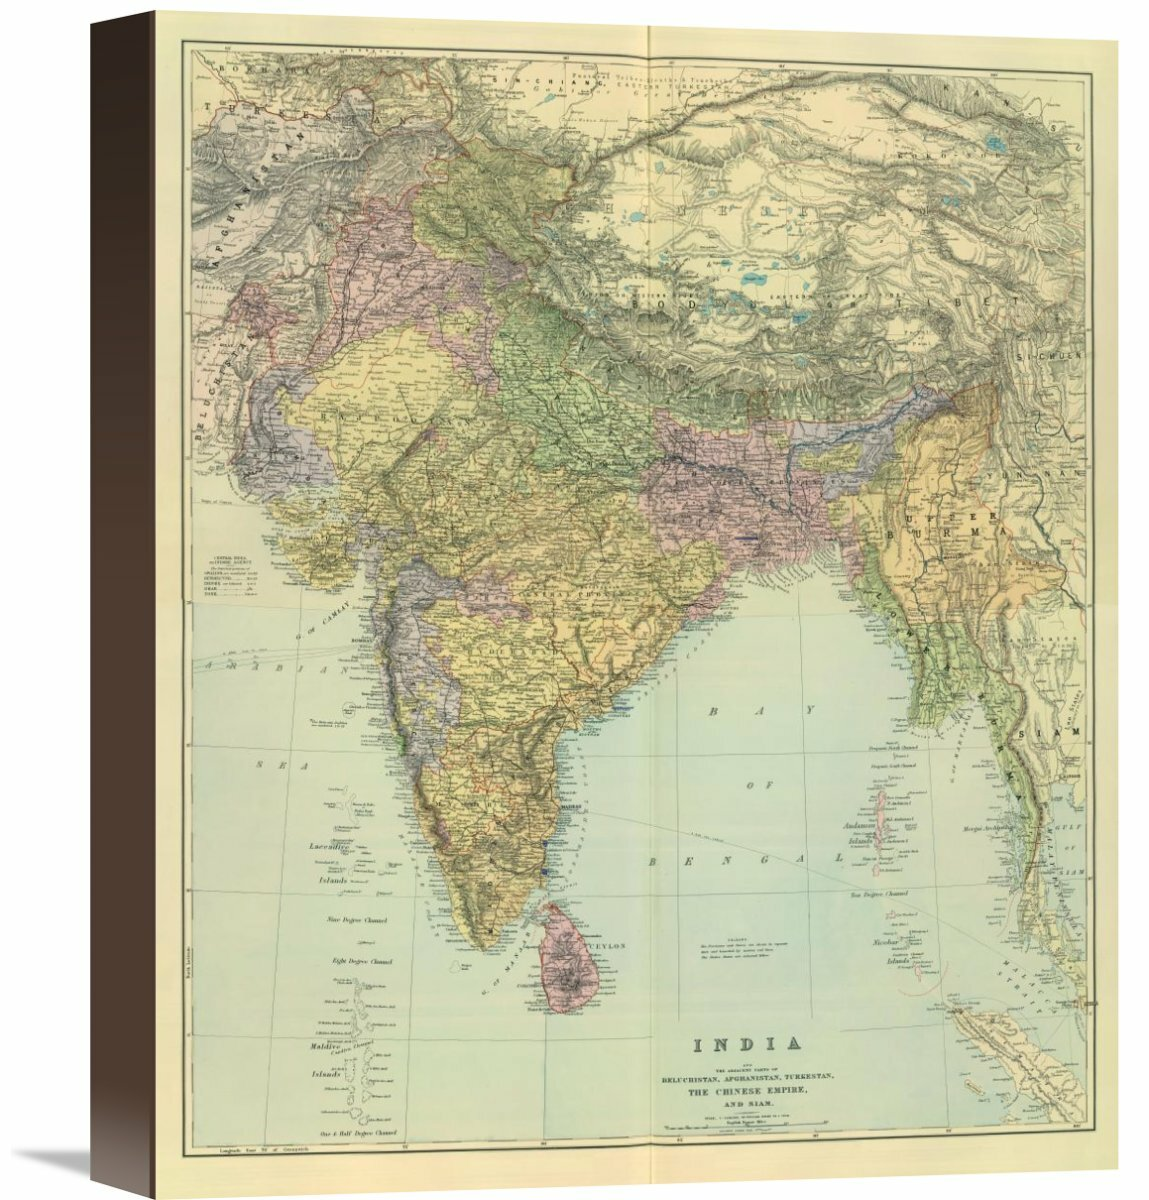 Global Gallery Composite India 1901 By Edward Stanford Graphic Art On Wrapped Canvas Wayfair